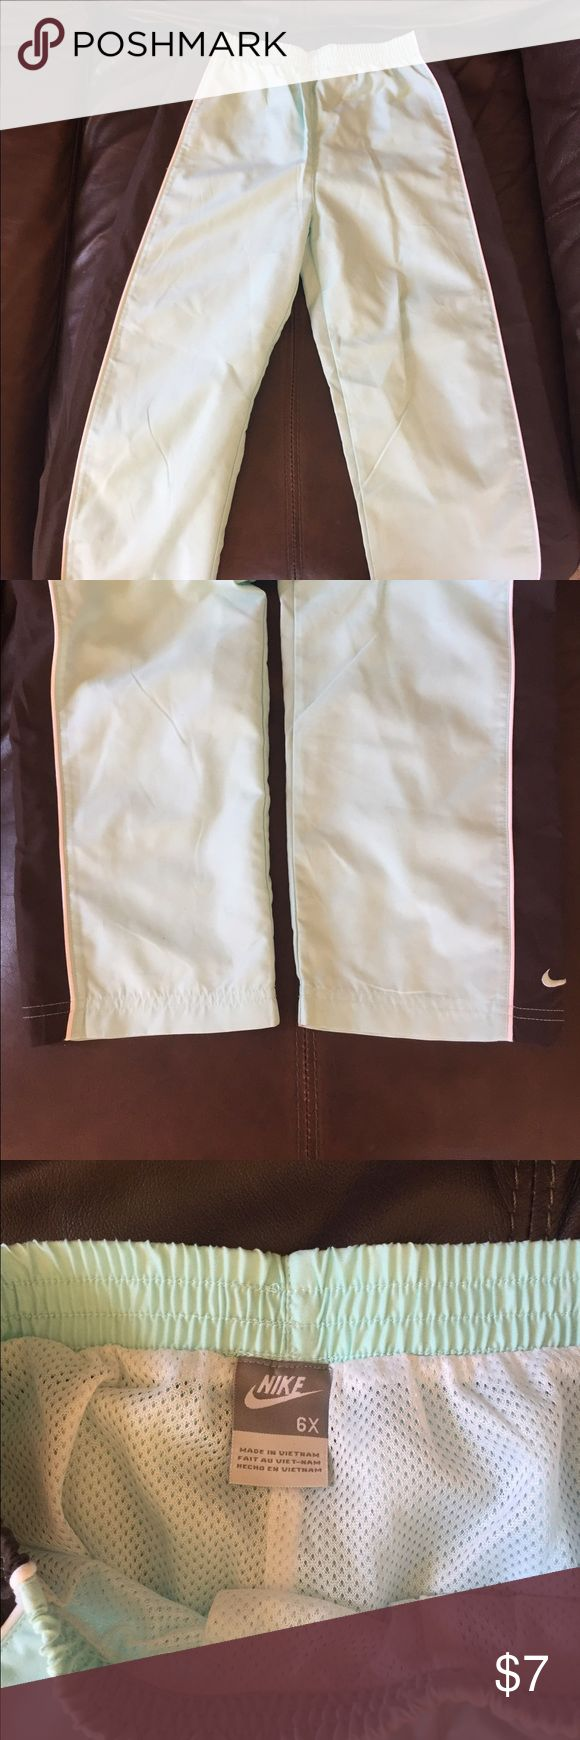 Girl Nike Running pants Girl NWOT Nike running pants in a light blue and brown. Fully lined in the mesh material shown in the 3rd picture. My daughter outgrew them before she could wear them. Perfect condition! Nike Bottoms Sweatpants & Joggers